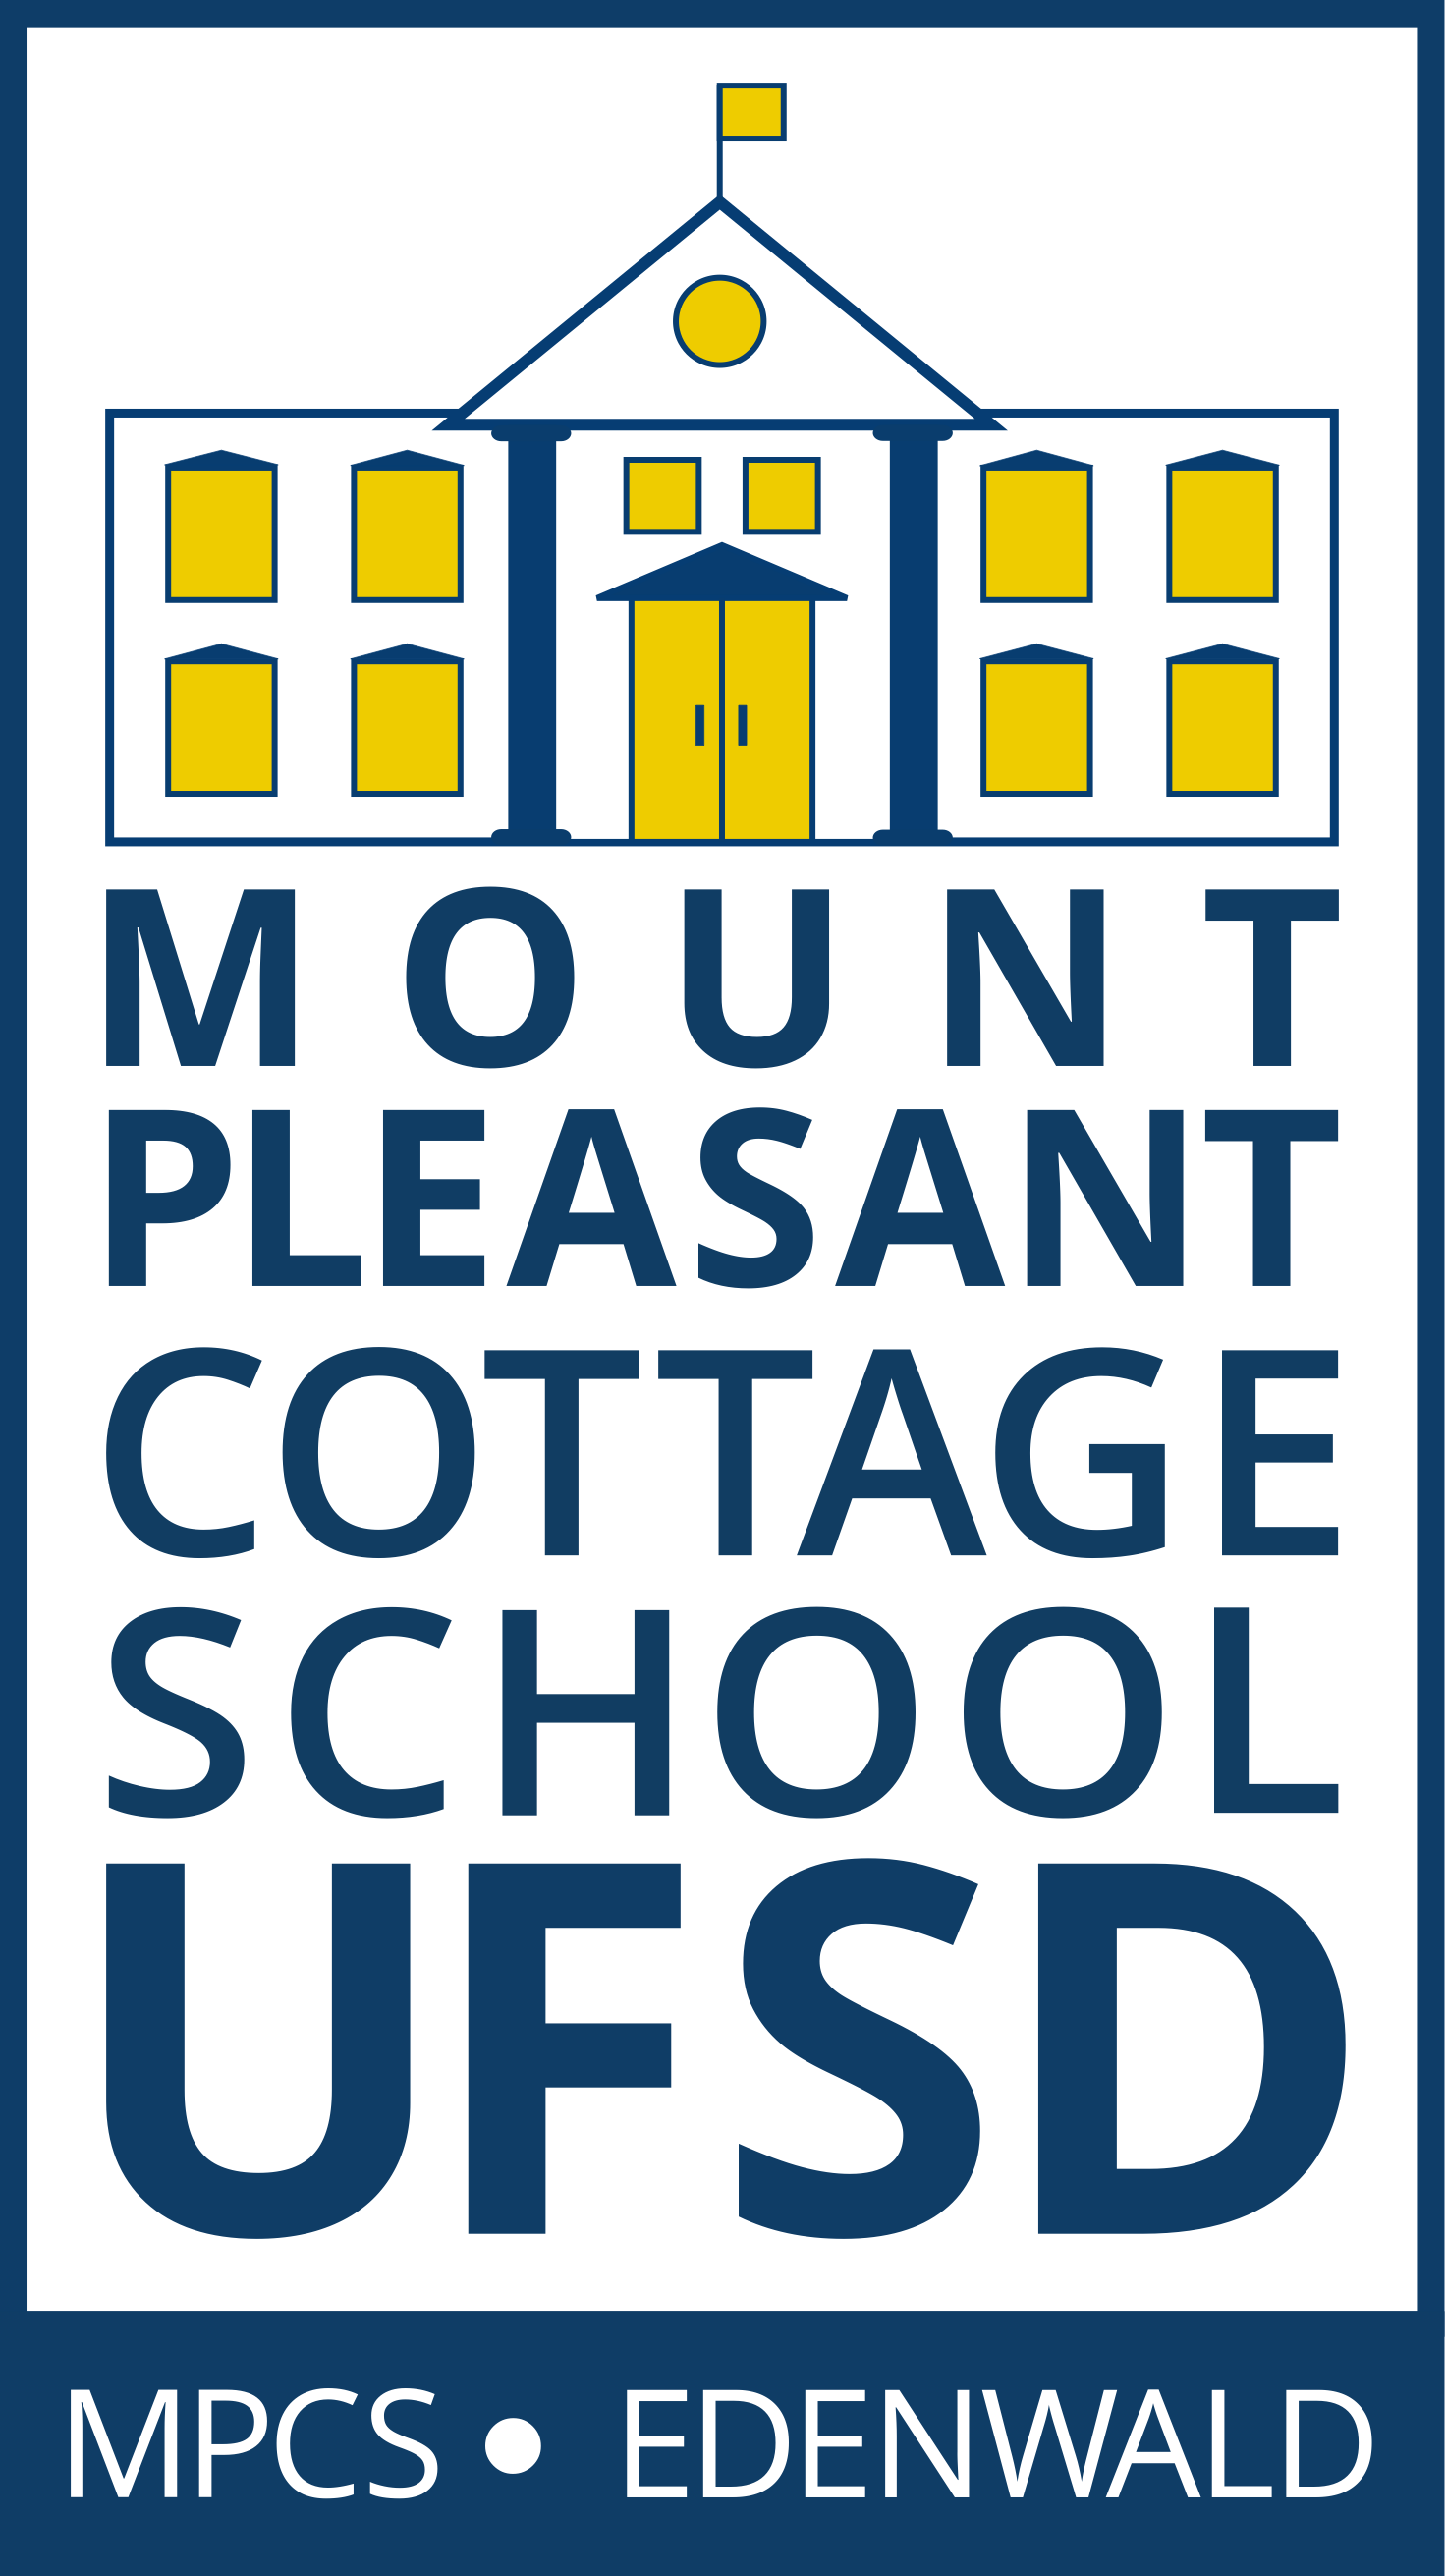 Mount Pleasant Cottage School Union Free School District Home Page